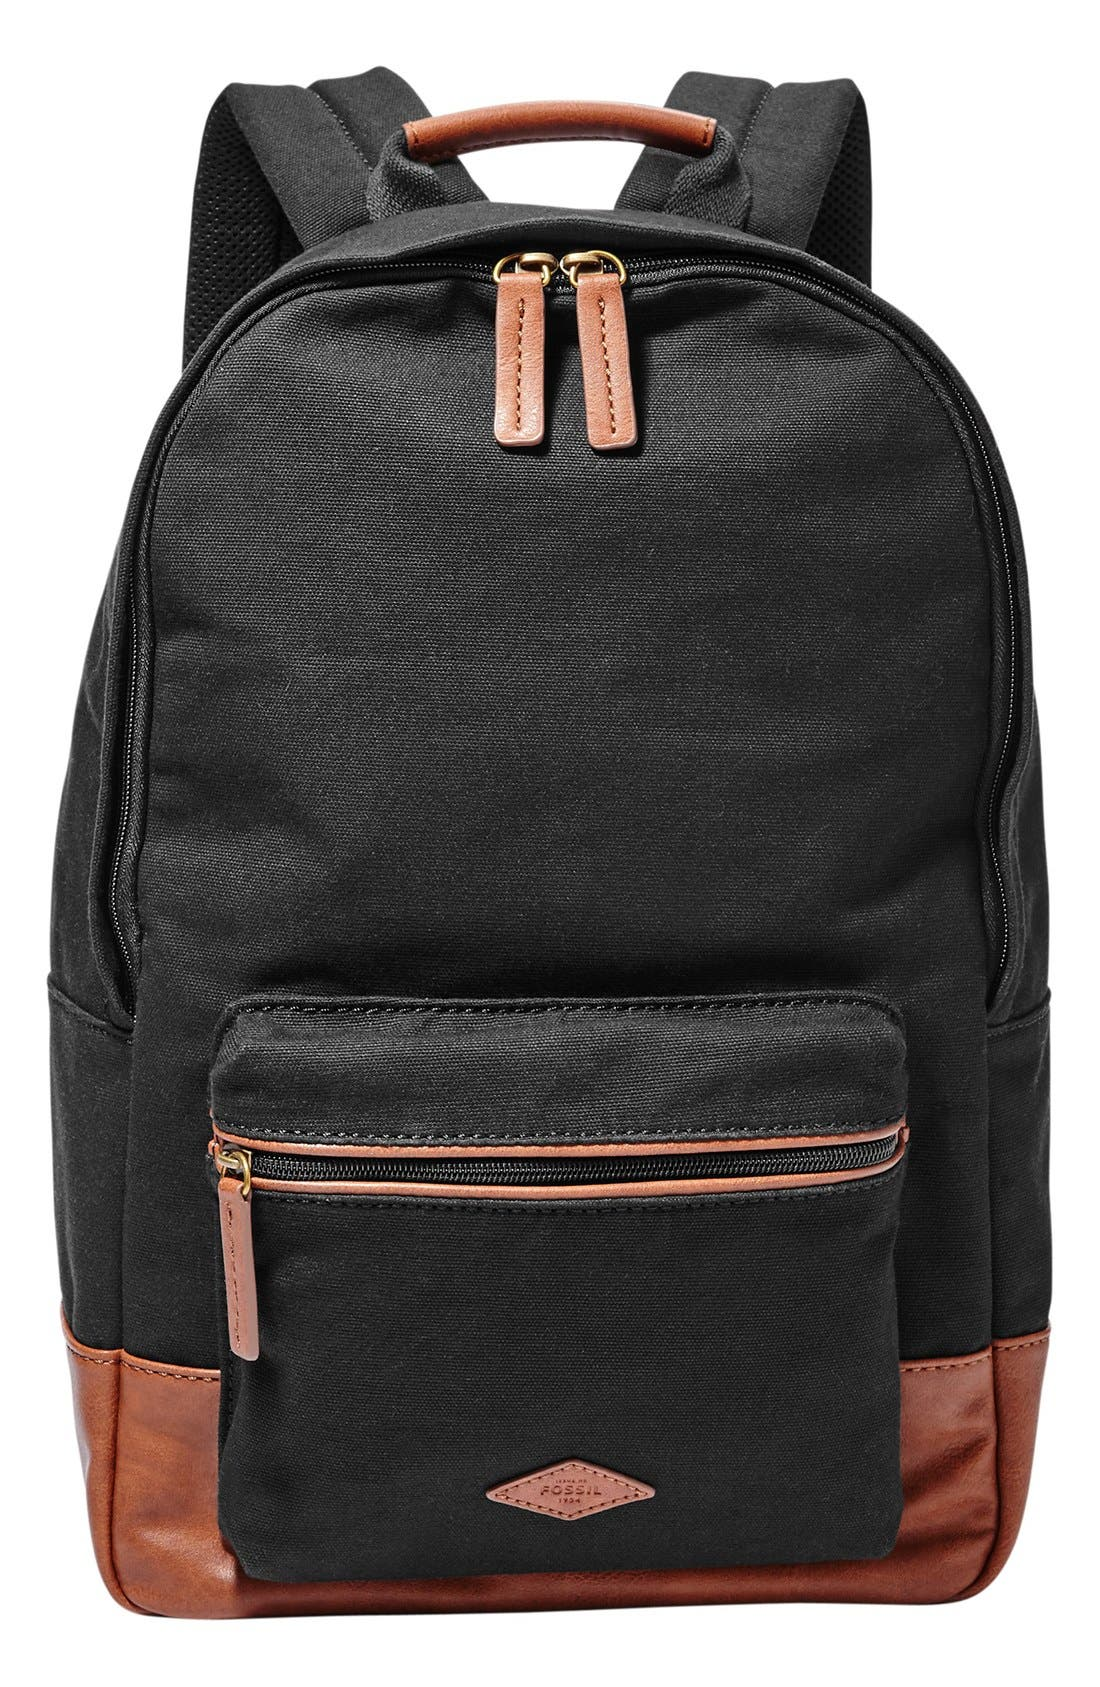 Main Image - Fossil 'Estate' Canvas Backpack